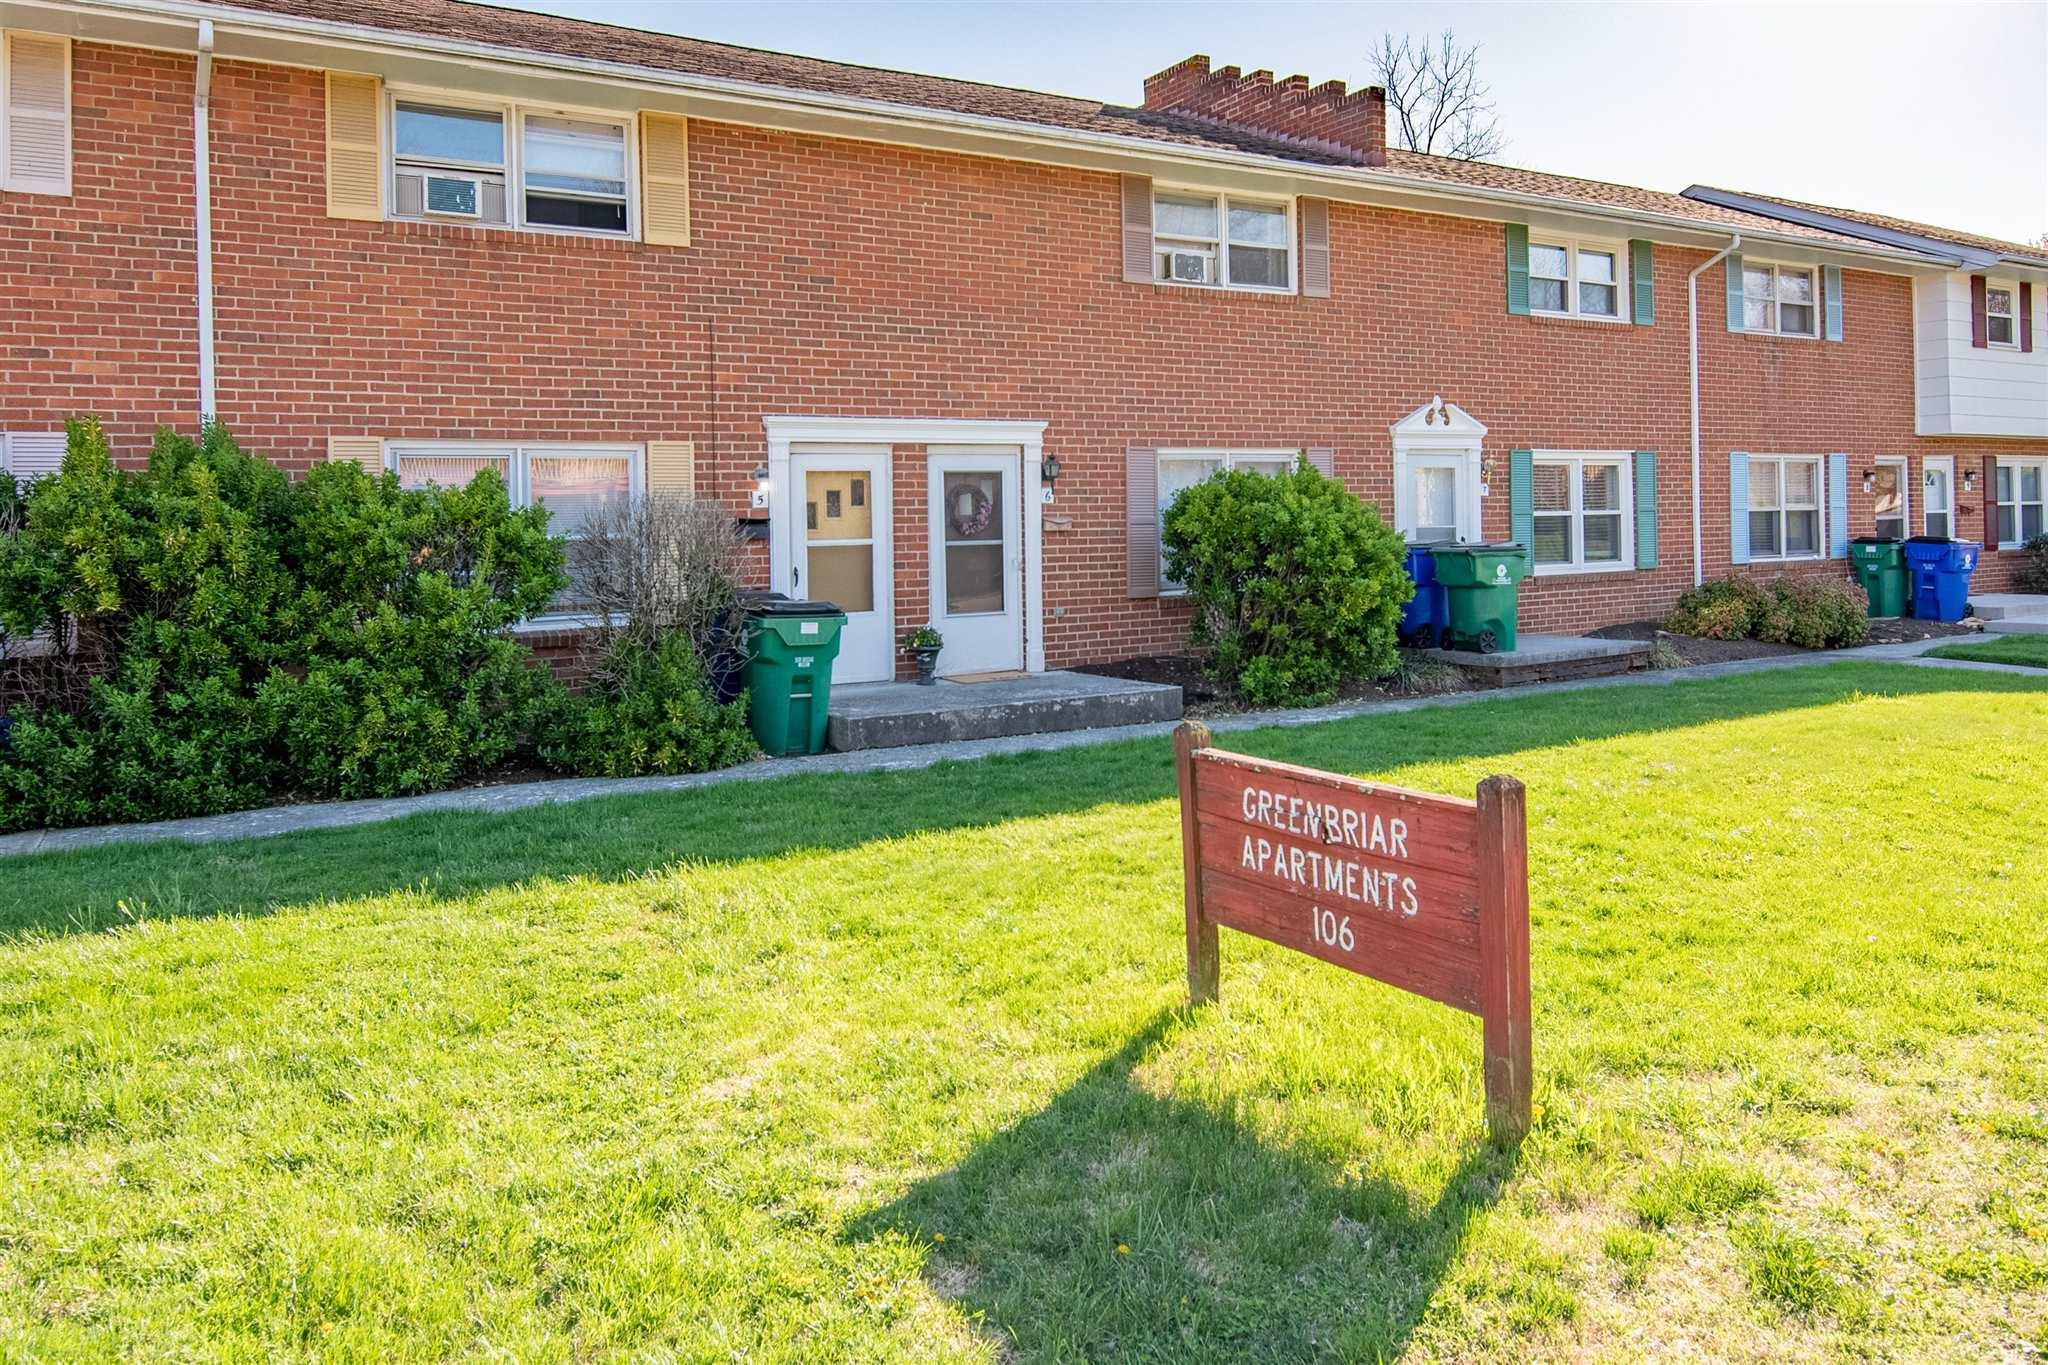 Rare find! Cute townhouse in a great location in Blacksburg, walking distance to downtown and right in front of the bus stop. Recently painted with new floors, new AC unit and new electric baseboard in master. There are 2 parking spaces in the back right at the back door.